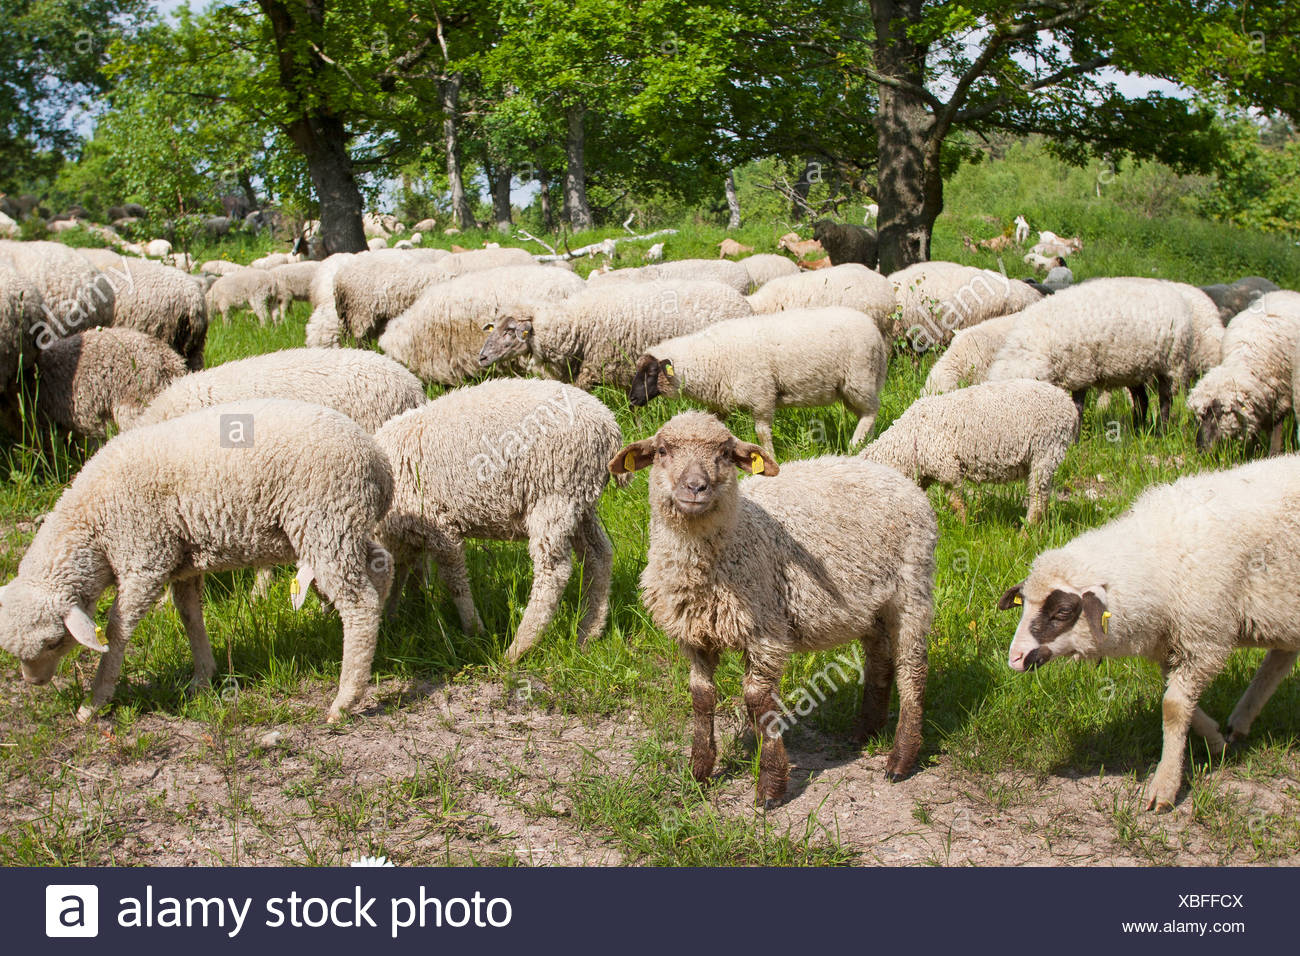 Merino sheep (Ovis ammon f. aries), flock of sheep browsing in a meadow under oaks, Germany - Stock Image